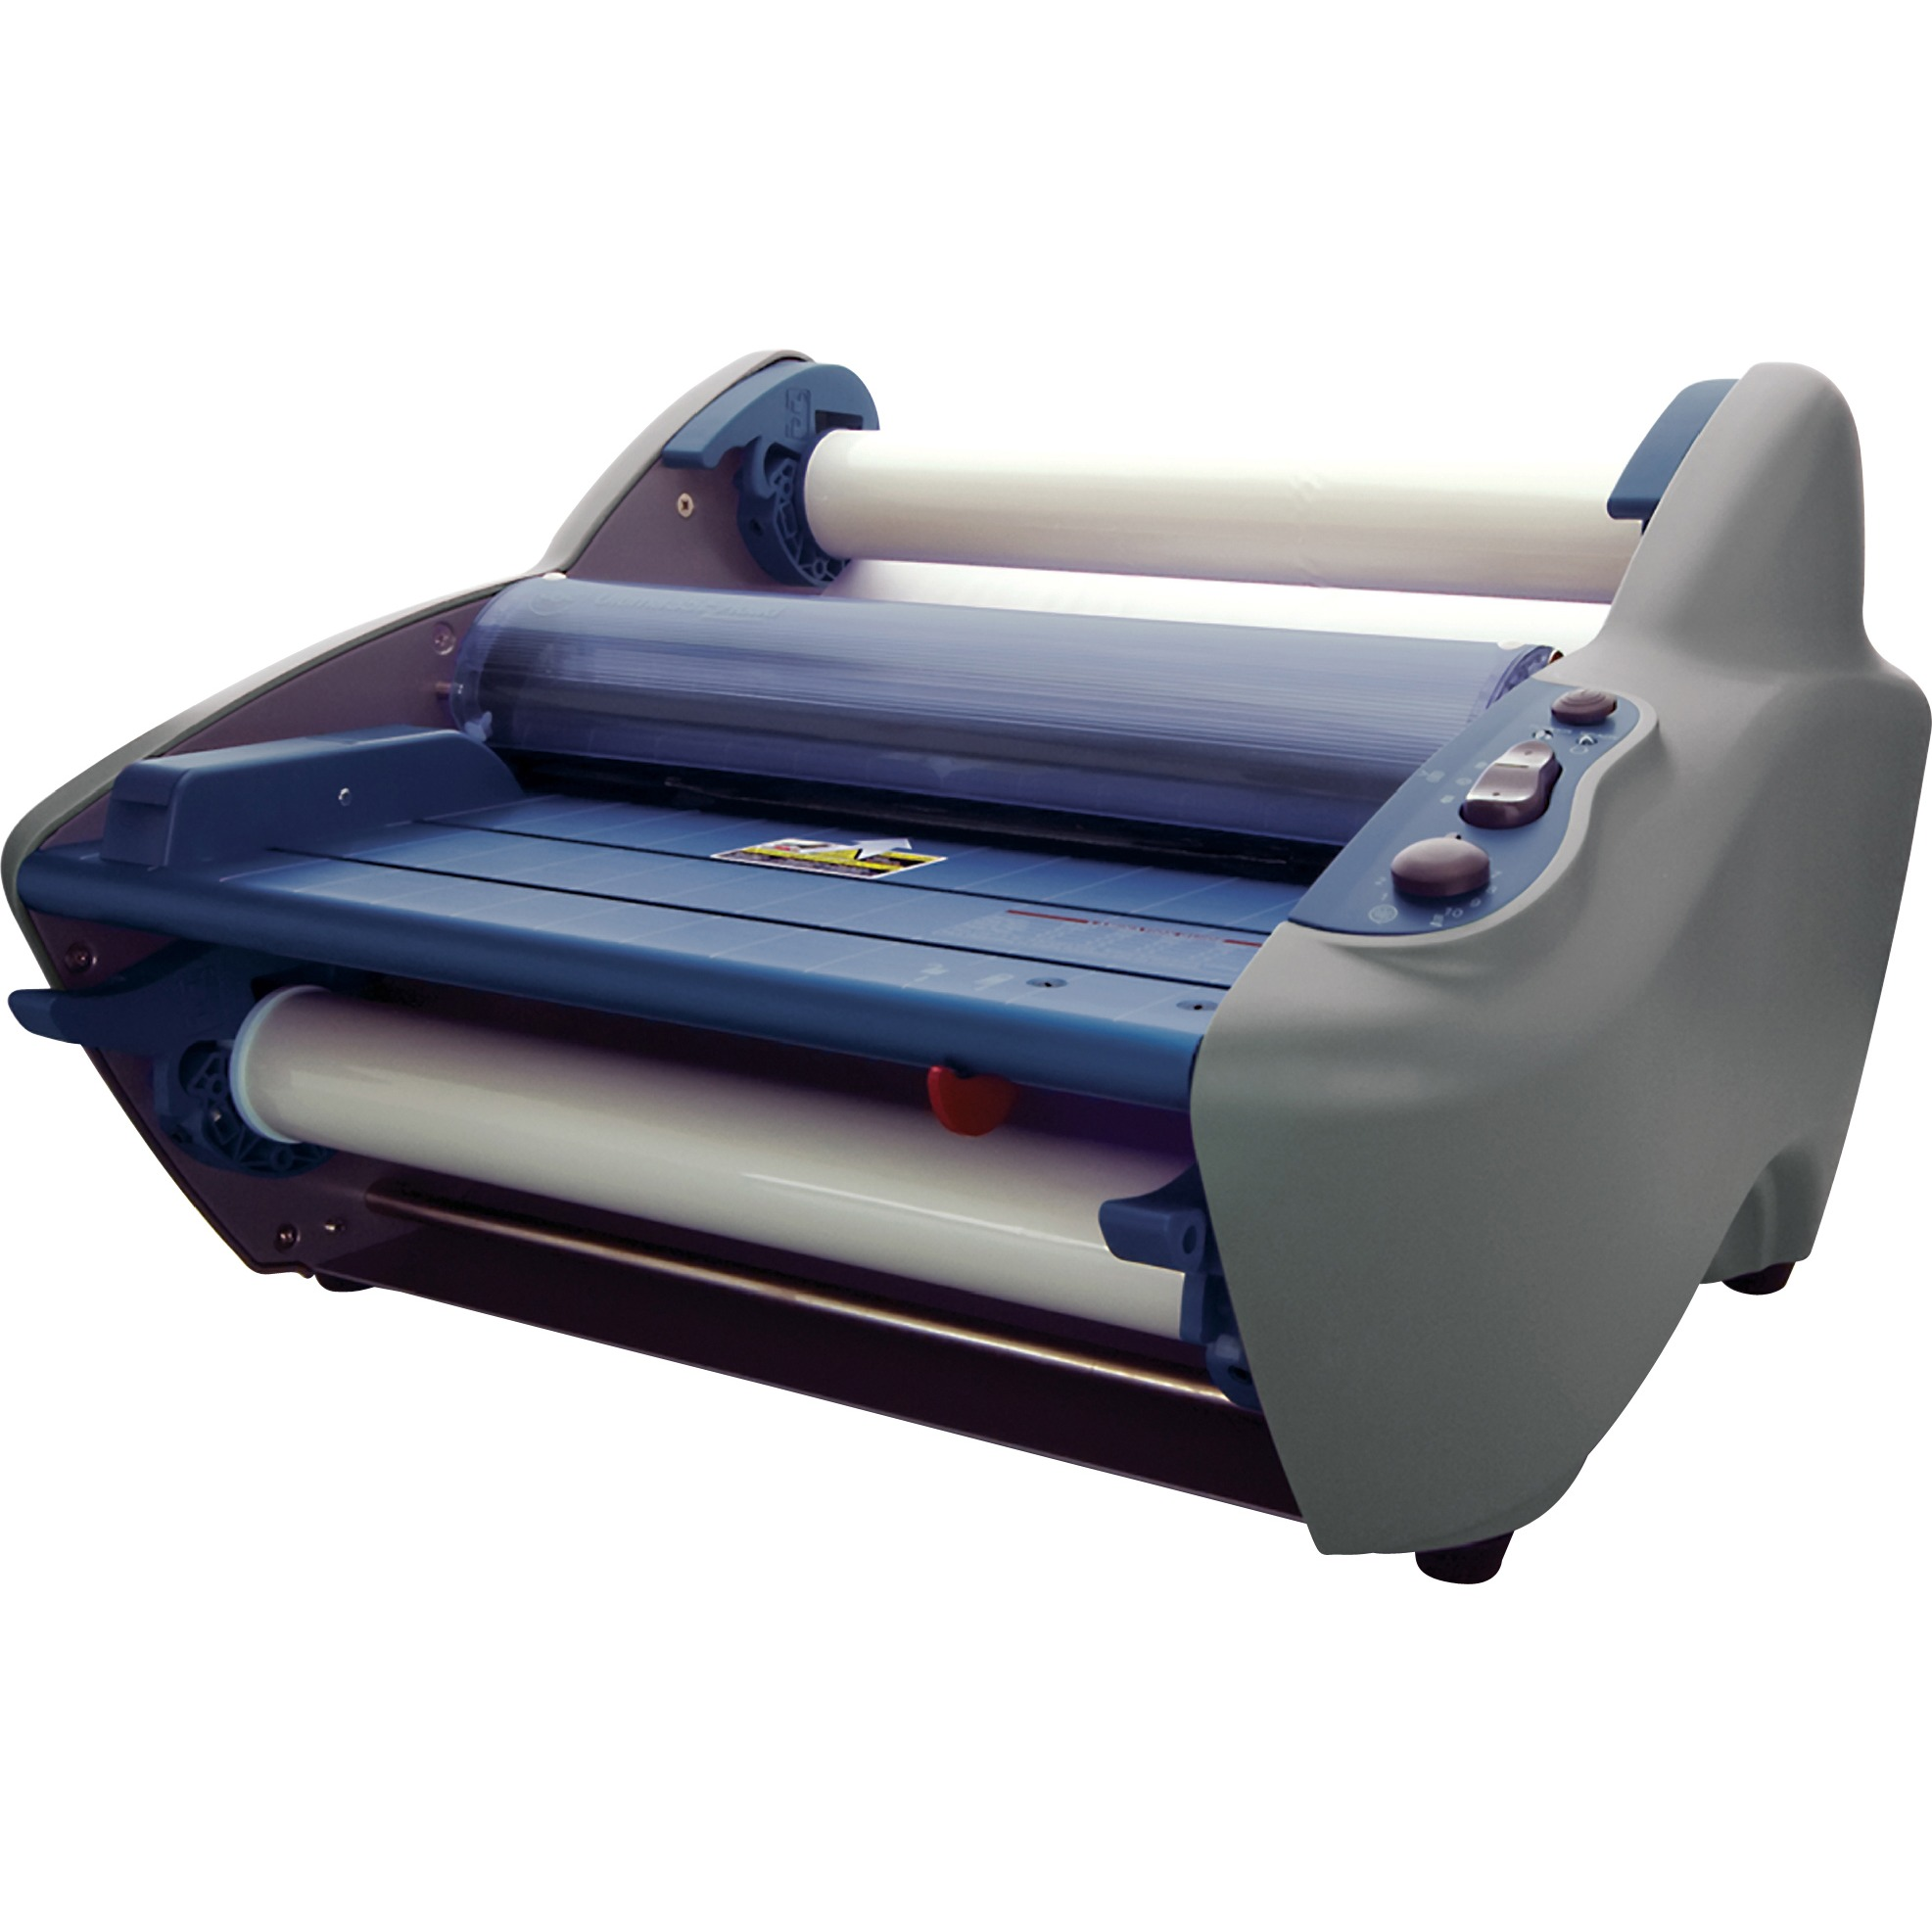 GBC, GBC1701680, Ultima 35 EZLoad Roll Film Laminator, 1, Gray